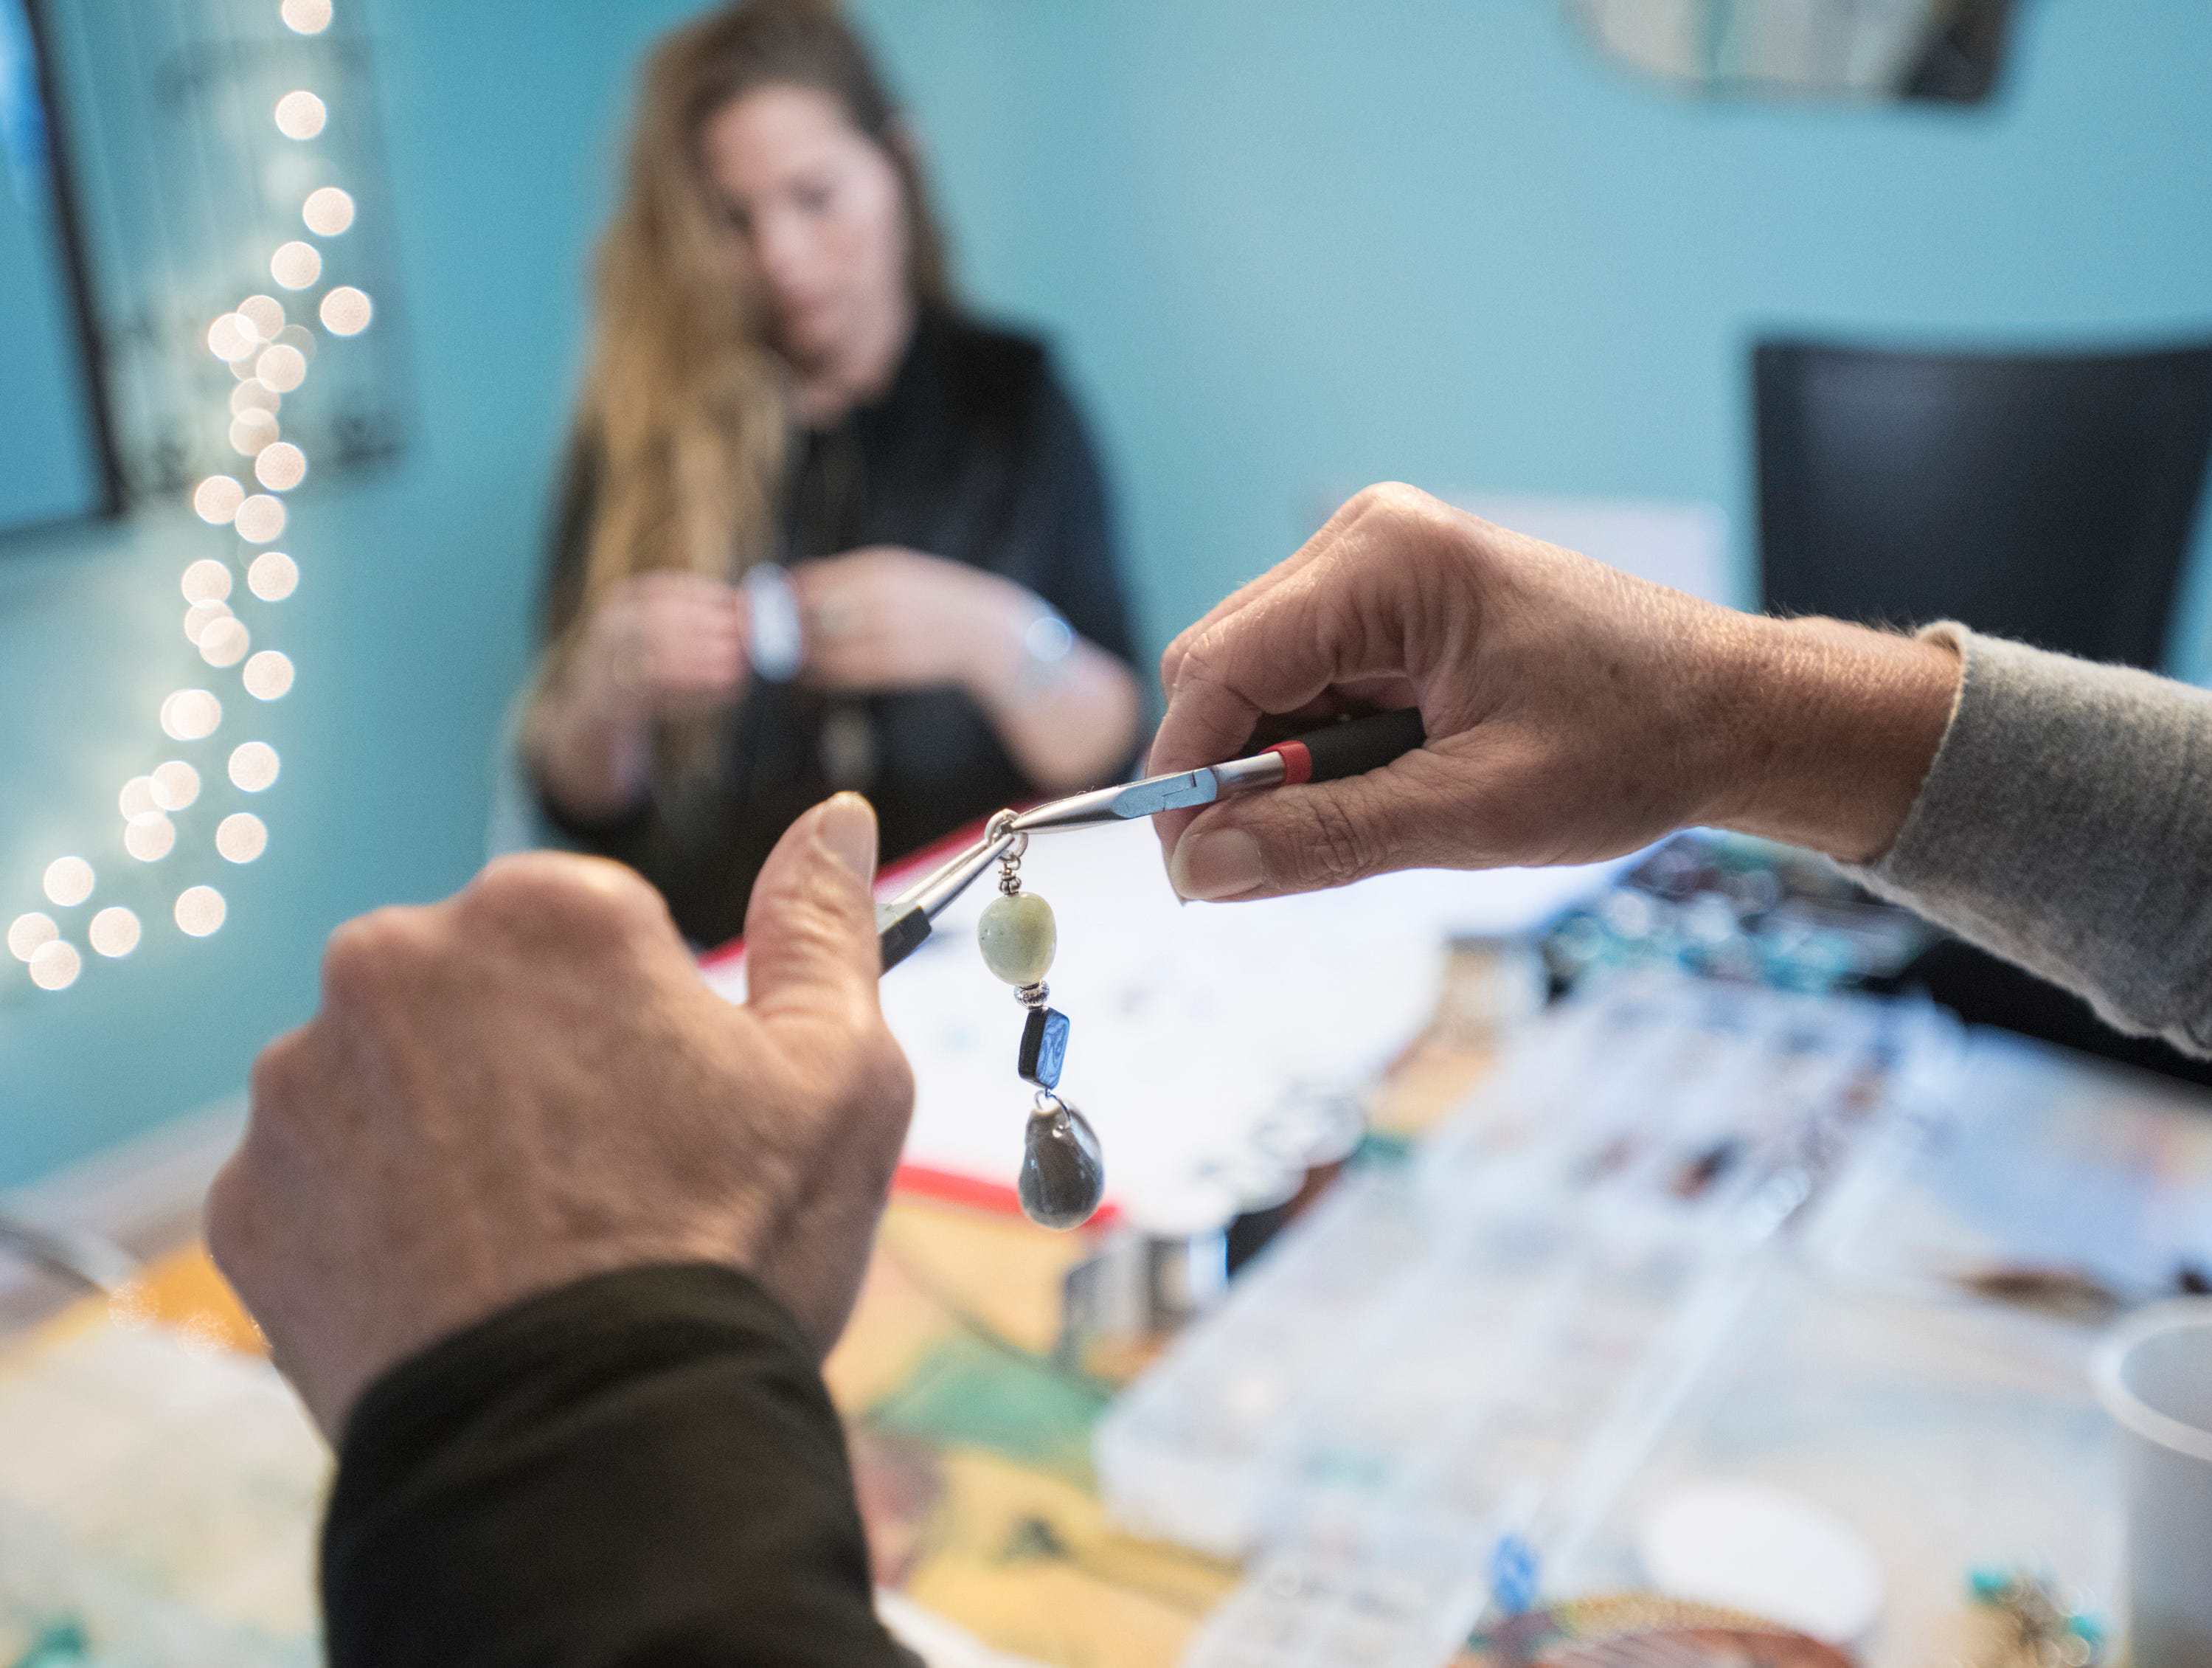 Mary Gentile, foreground, and her daughter Elli, co-founders of I Love Me Knot, create jewelry in Gulf Breeze on Wednesday, December 5, 2018.  A portion of their proceeds aids those who have been impacted by suicide while reducing the stigma around mental illness.